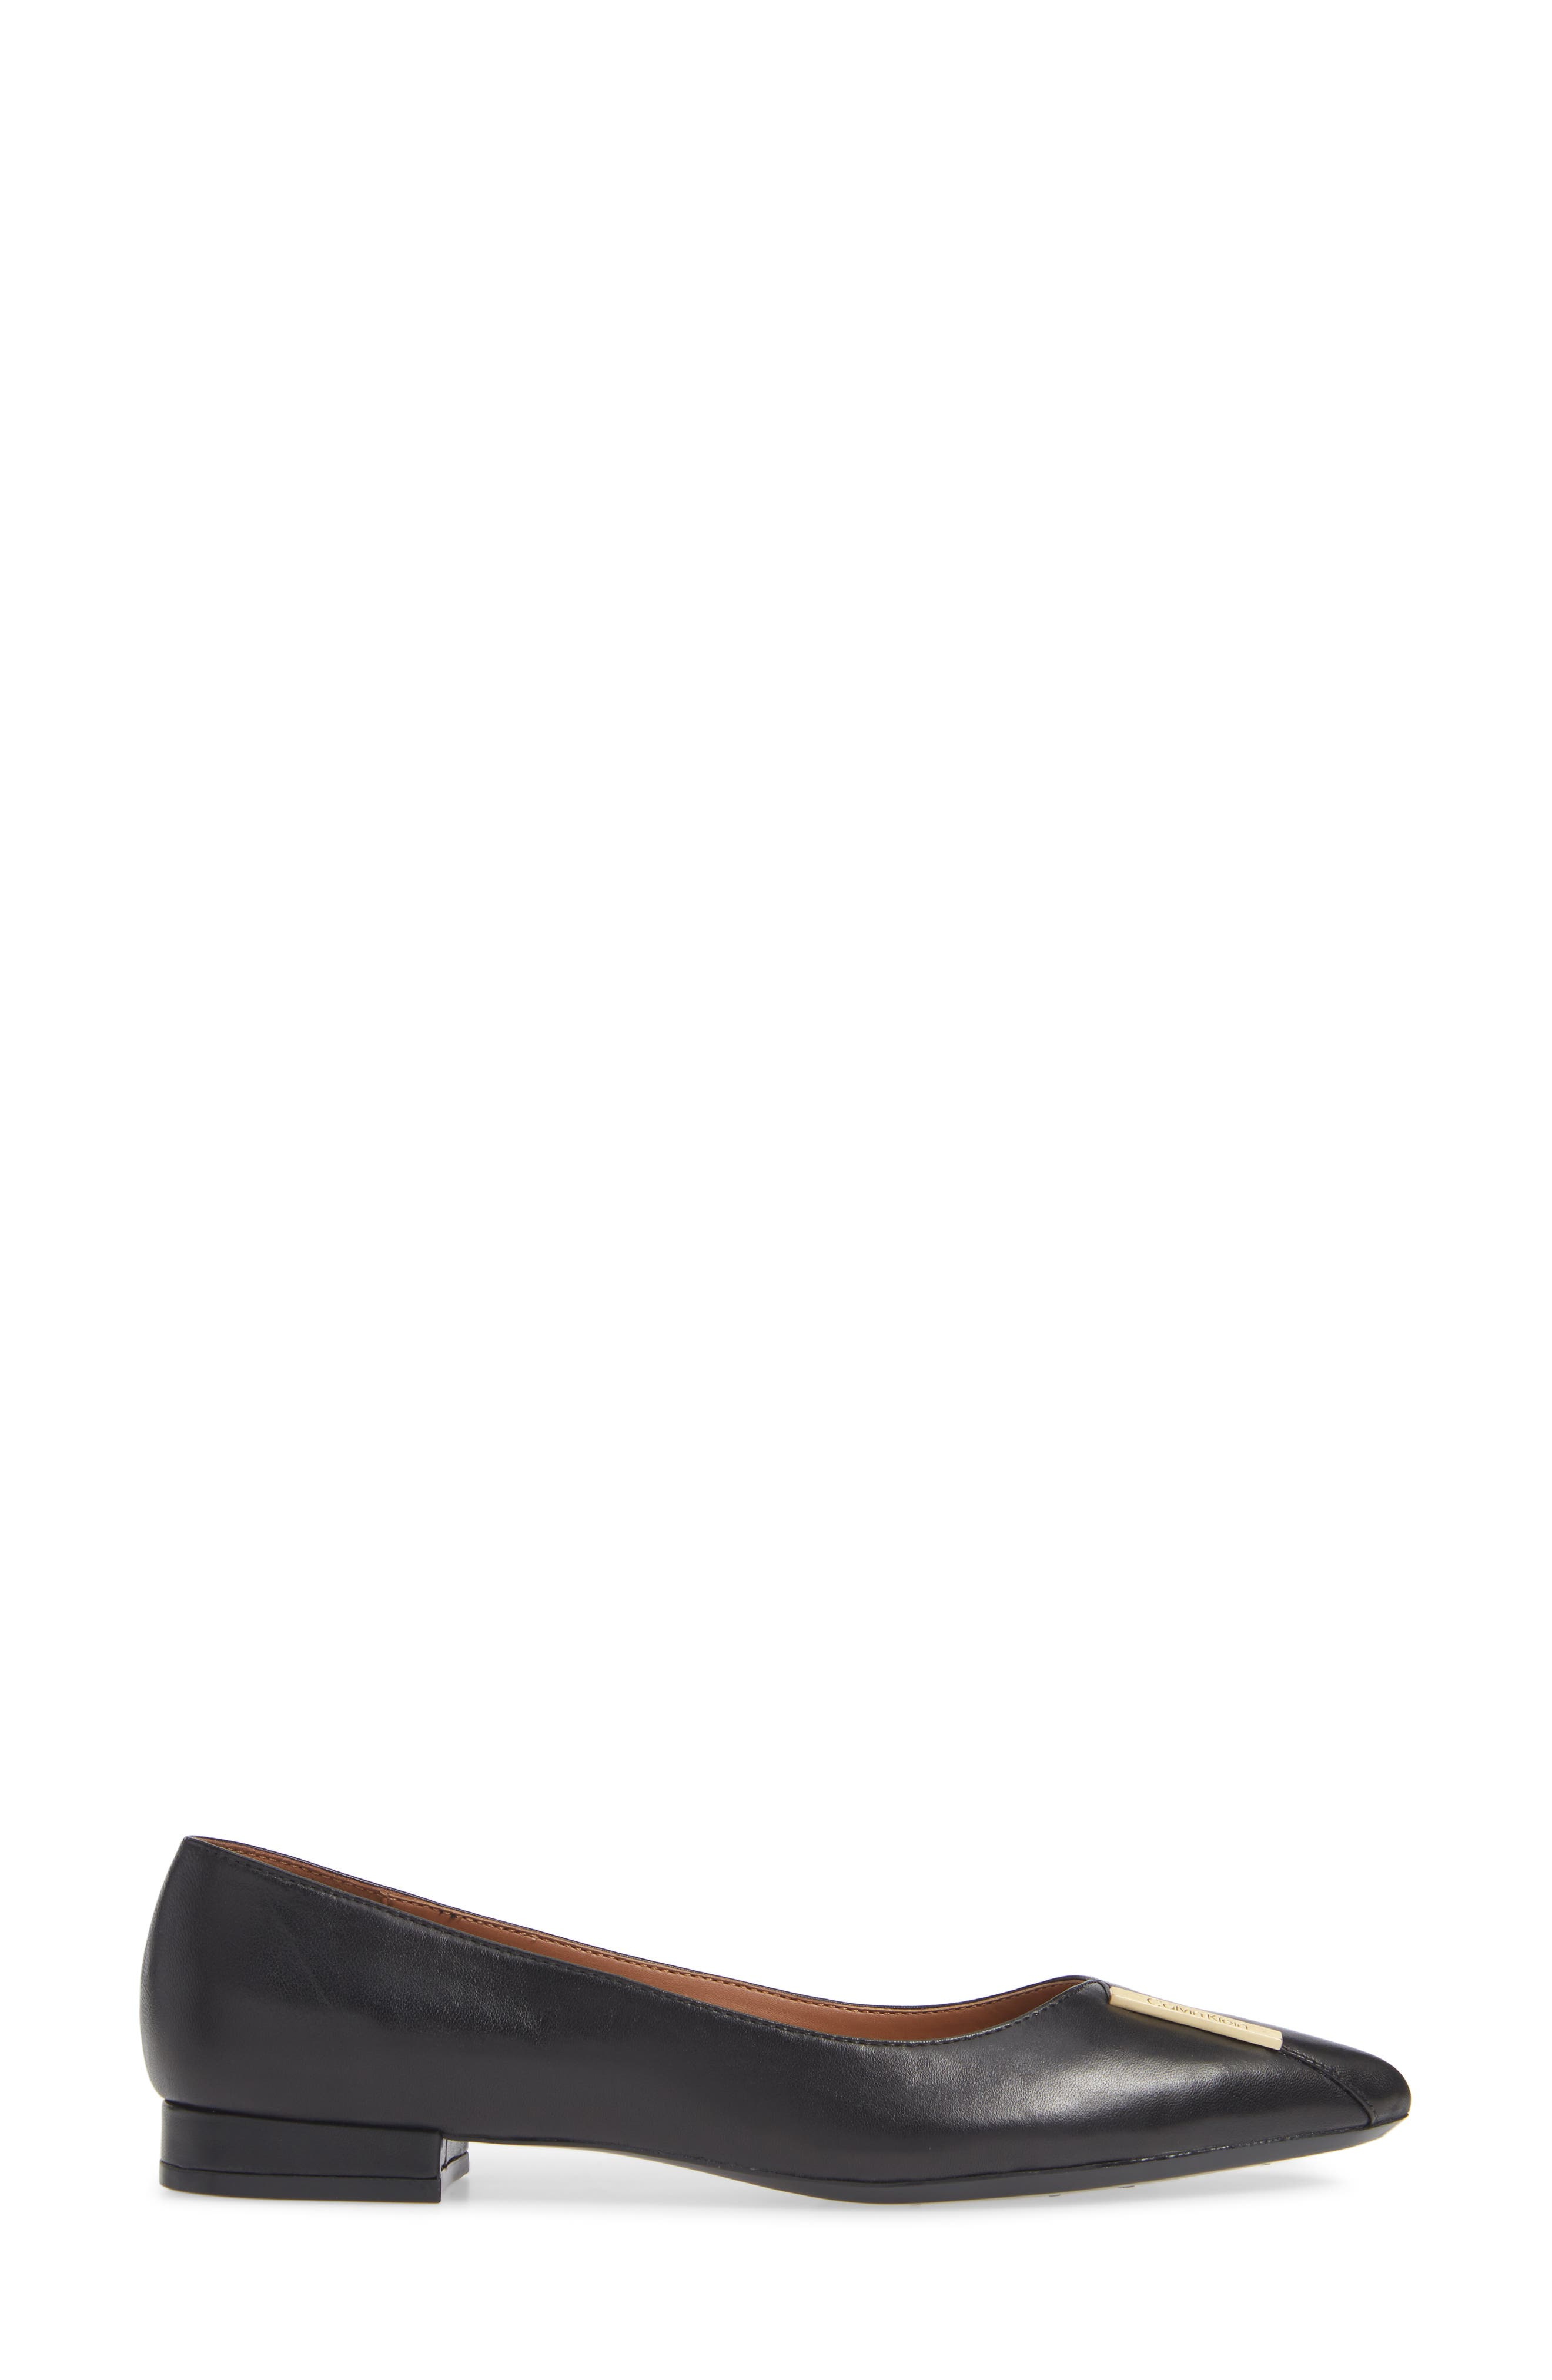 Arline Pointy Toe Flat,                             Alternate thumbnail 3, color,                             BLACK LEATHER